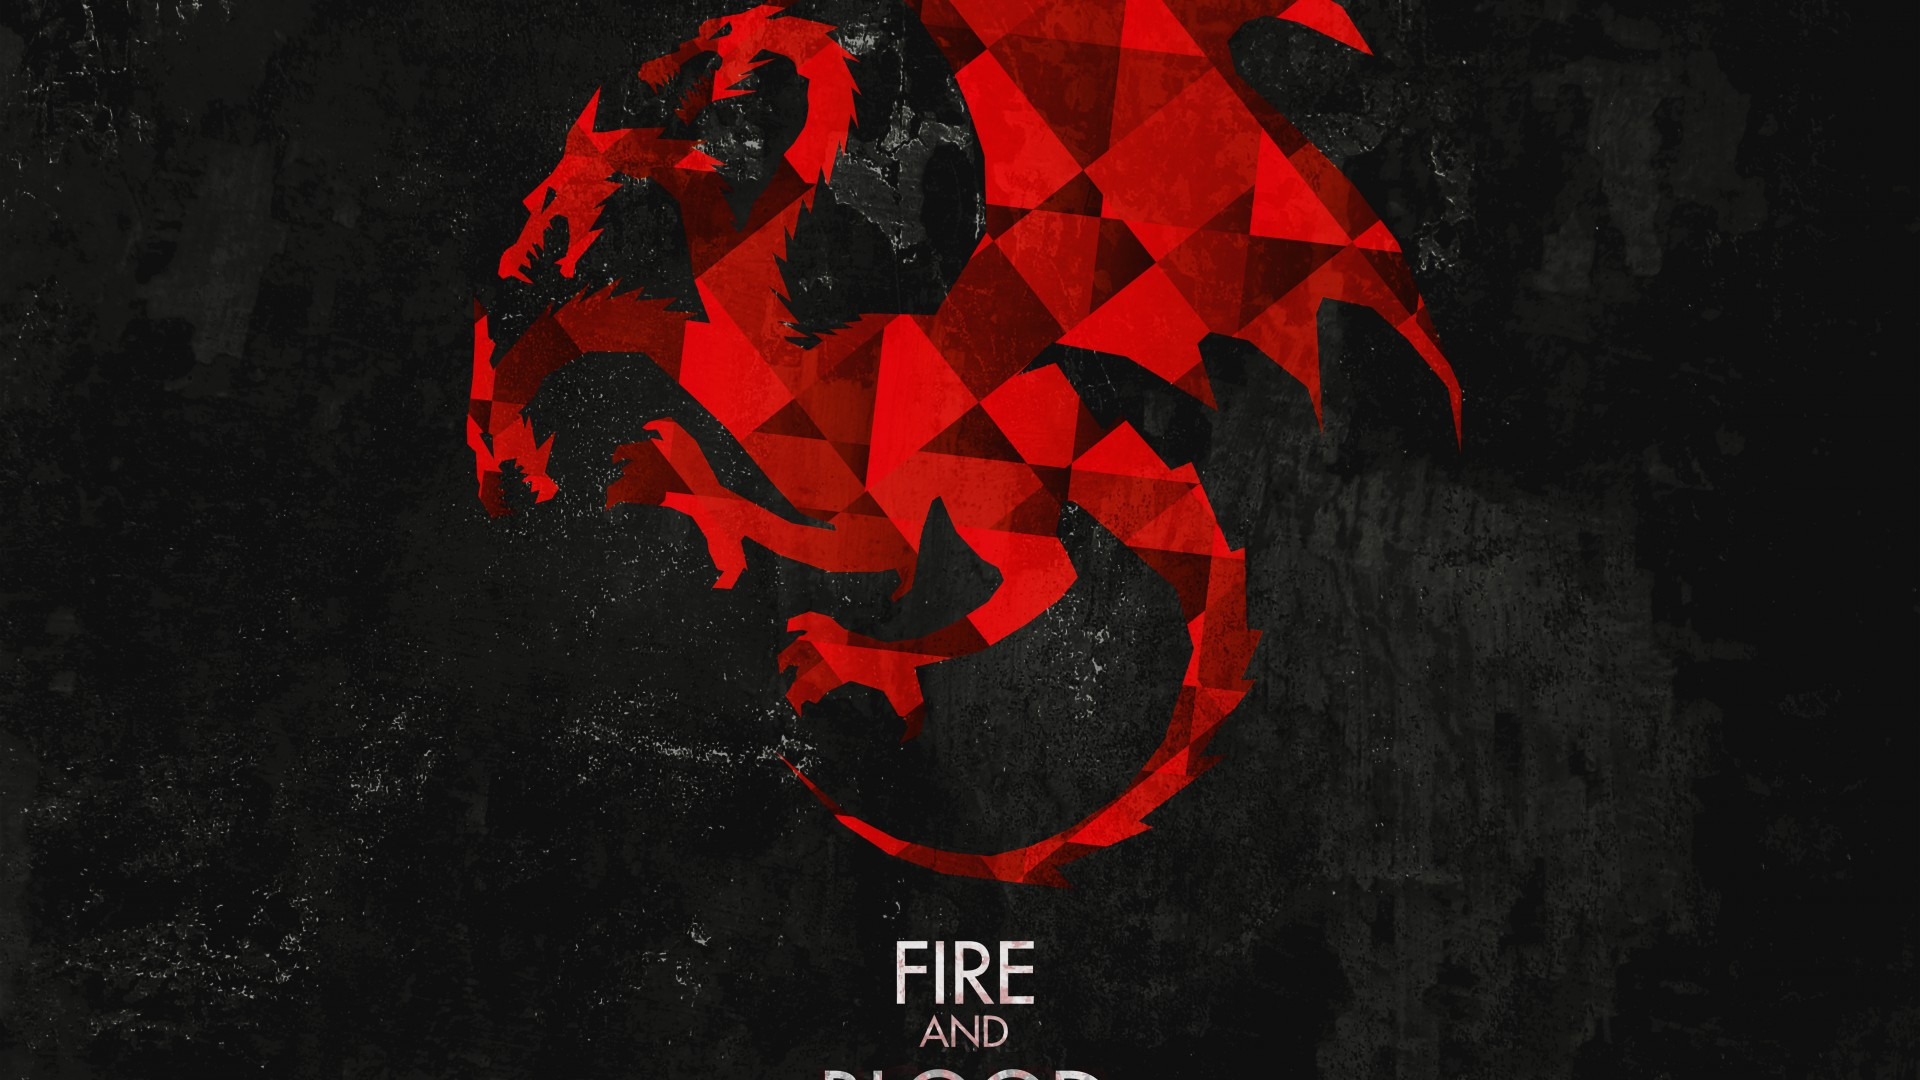 red dragons wallpaper - photo #15